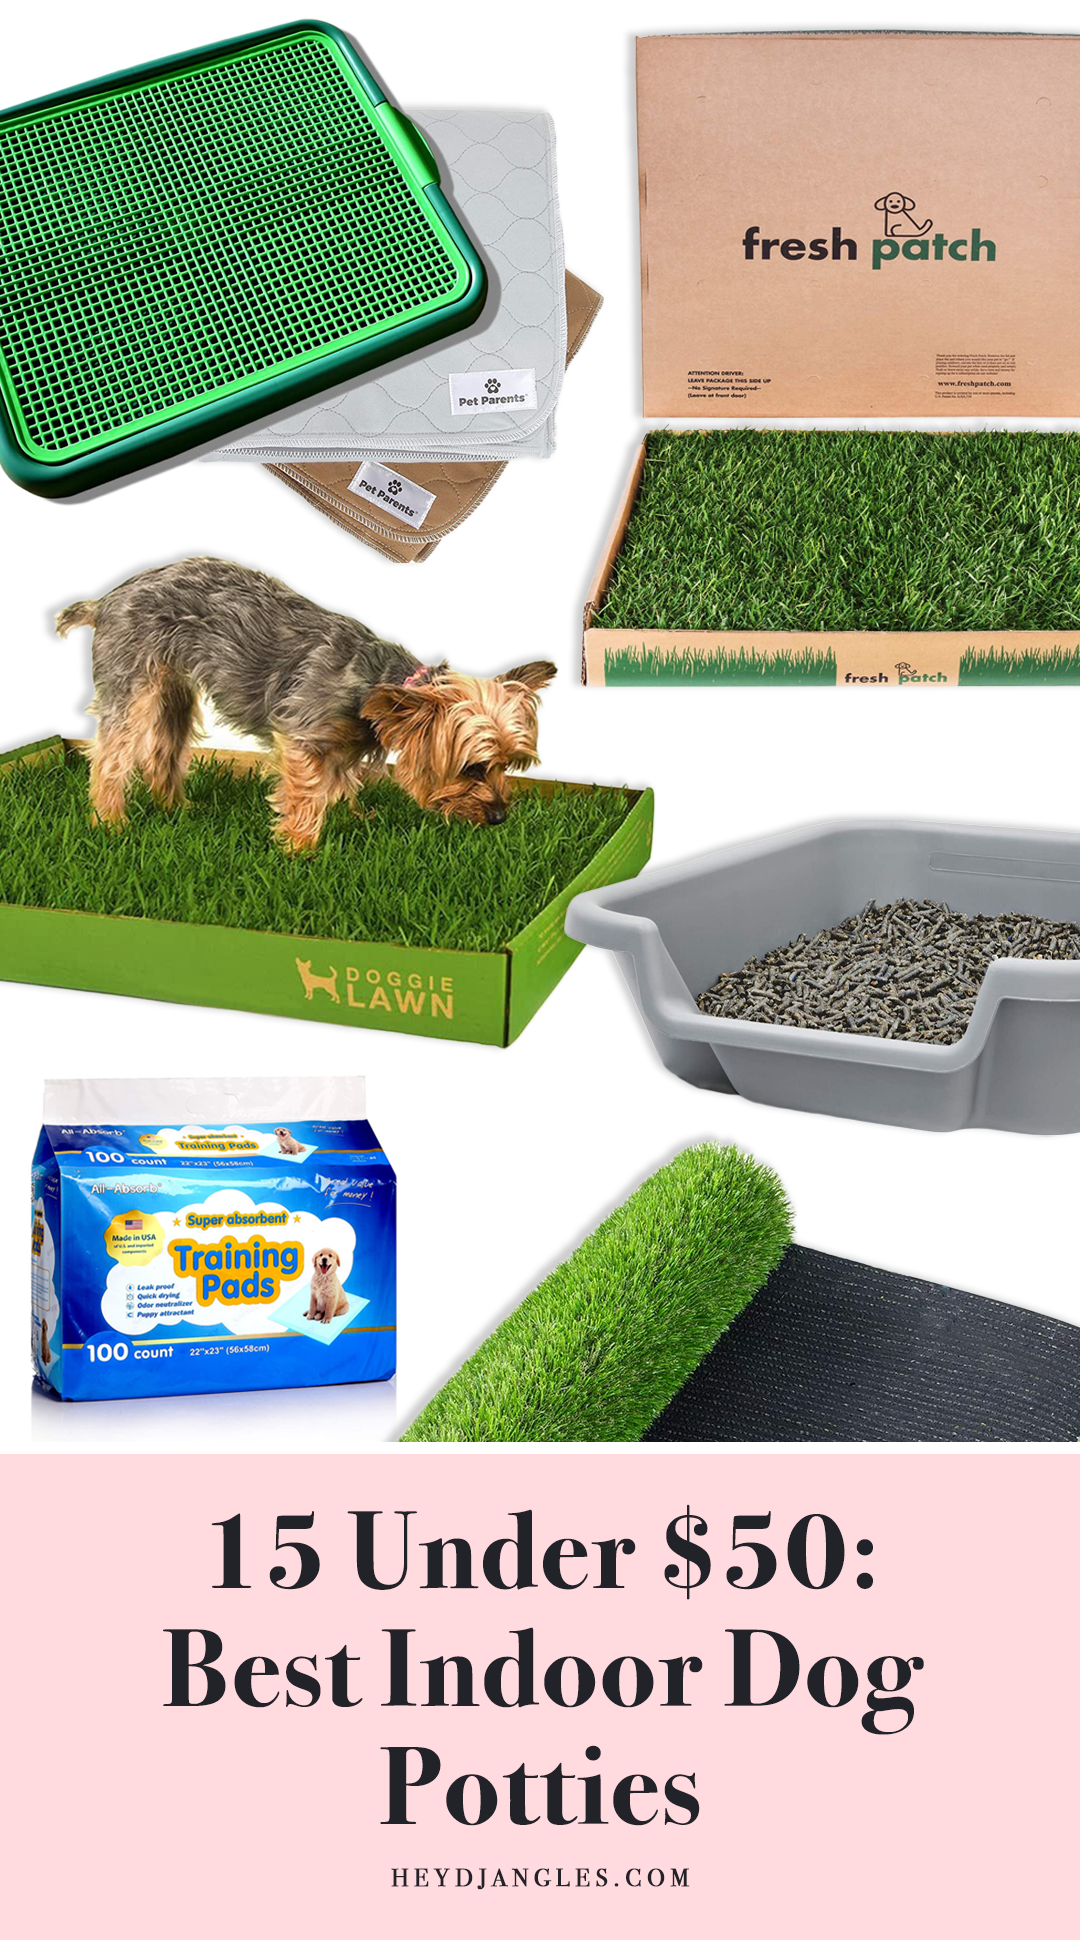 15 UNDER $50: Best Indoor Dog Potties –heydjangles.com, puppy toilet training, indoor dog potty, potty training your dog.